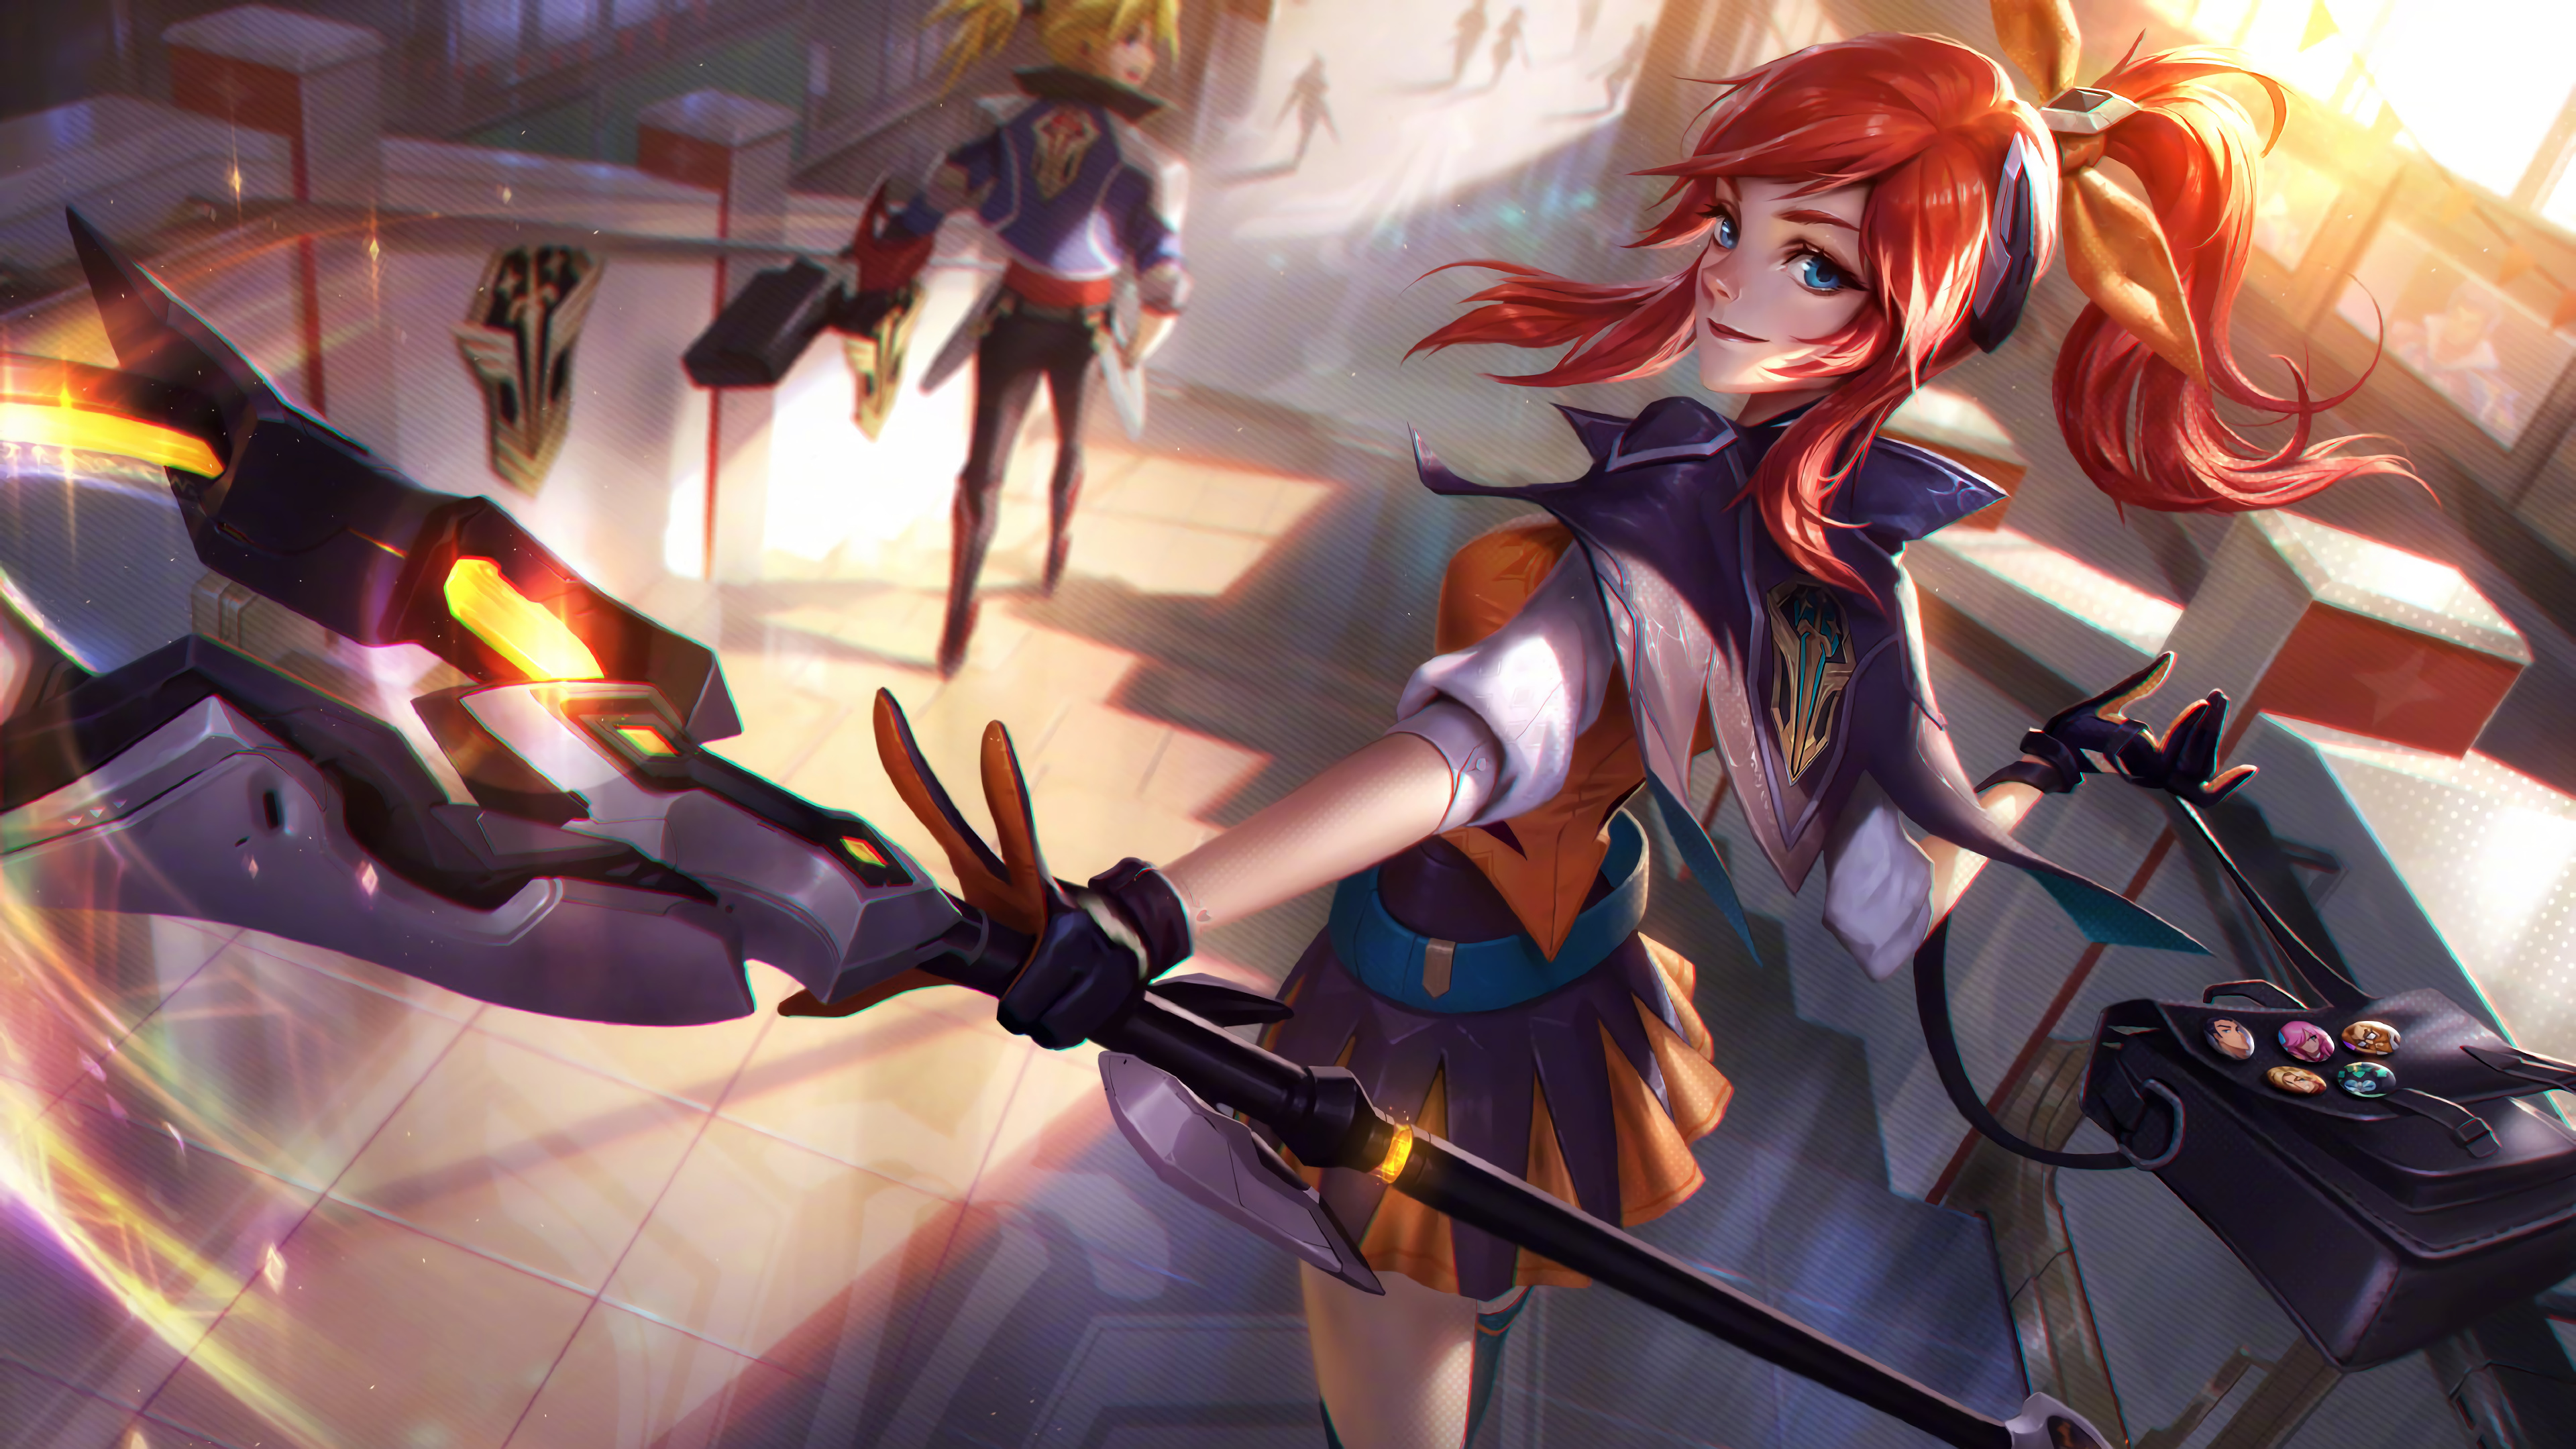 Battle Academia Lux Splash Art Lol 4k Wallpaper 79